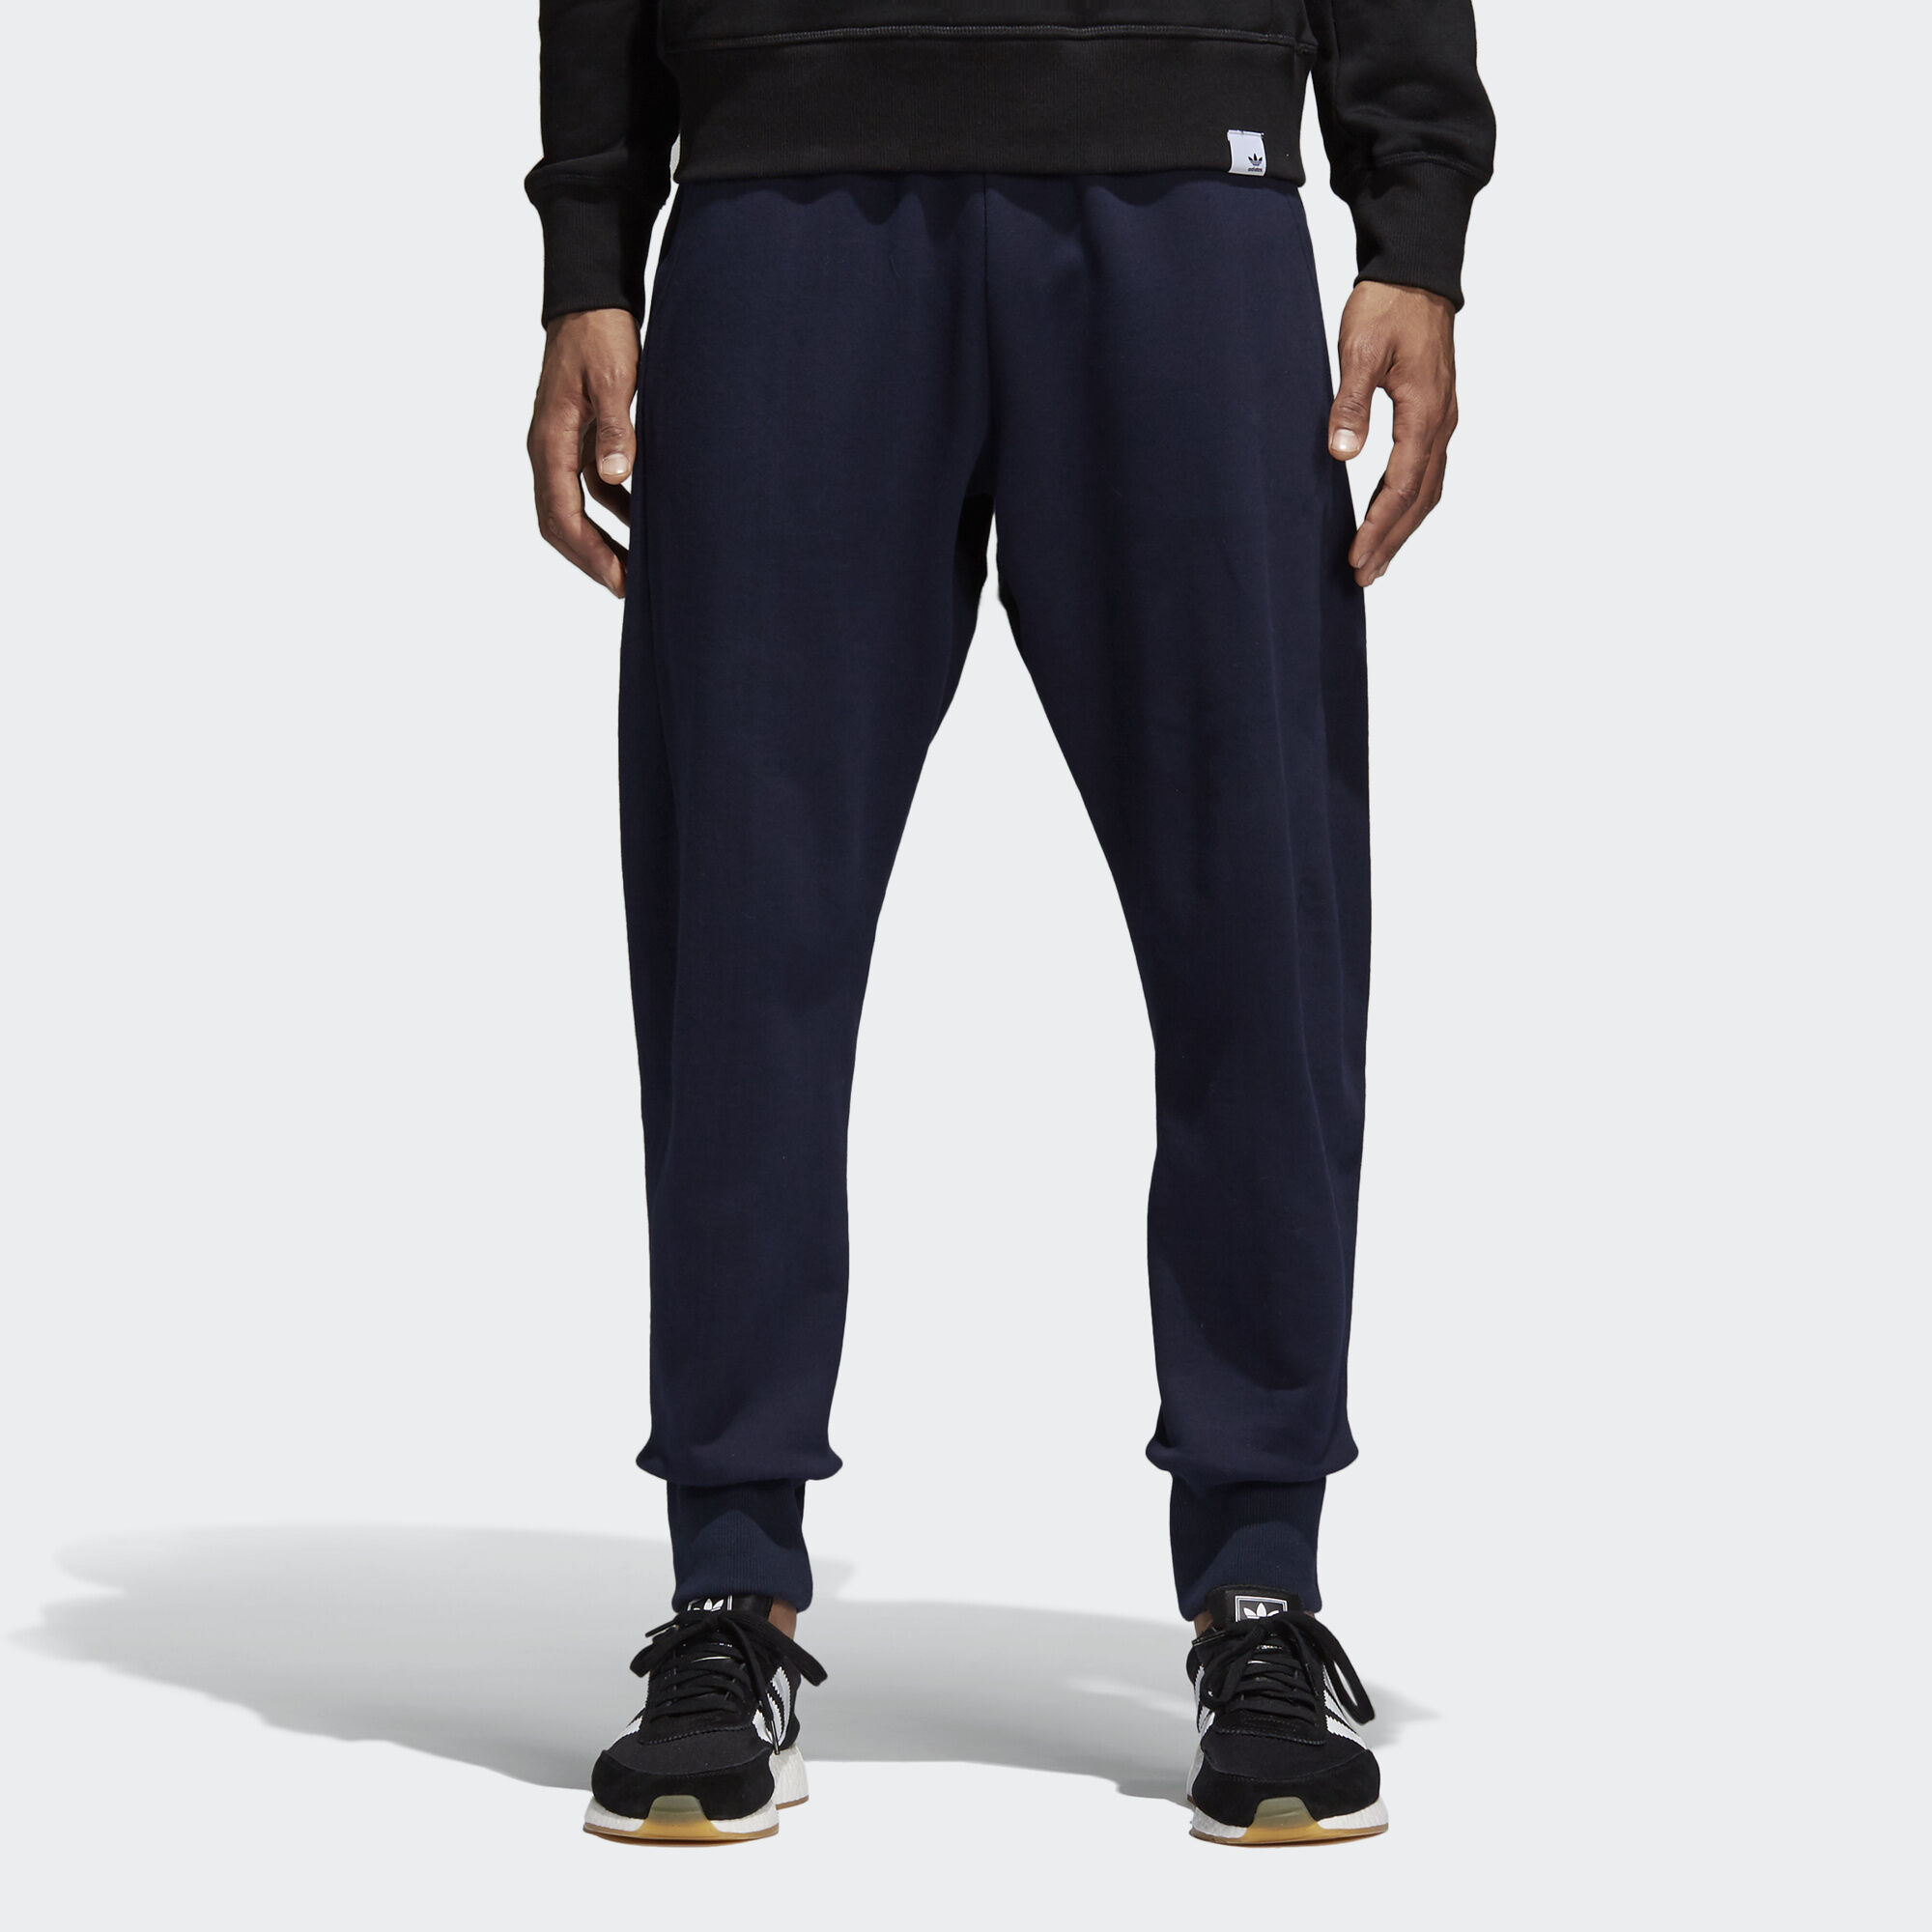 pantalon survetement adidas